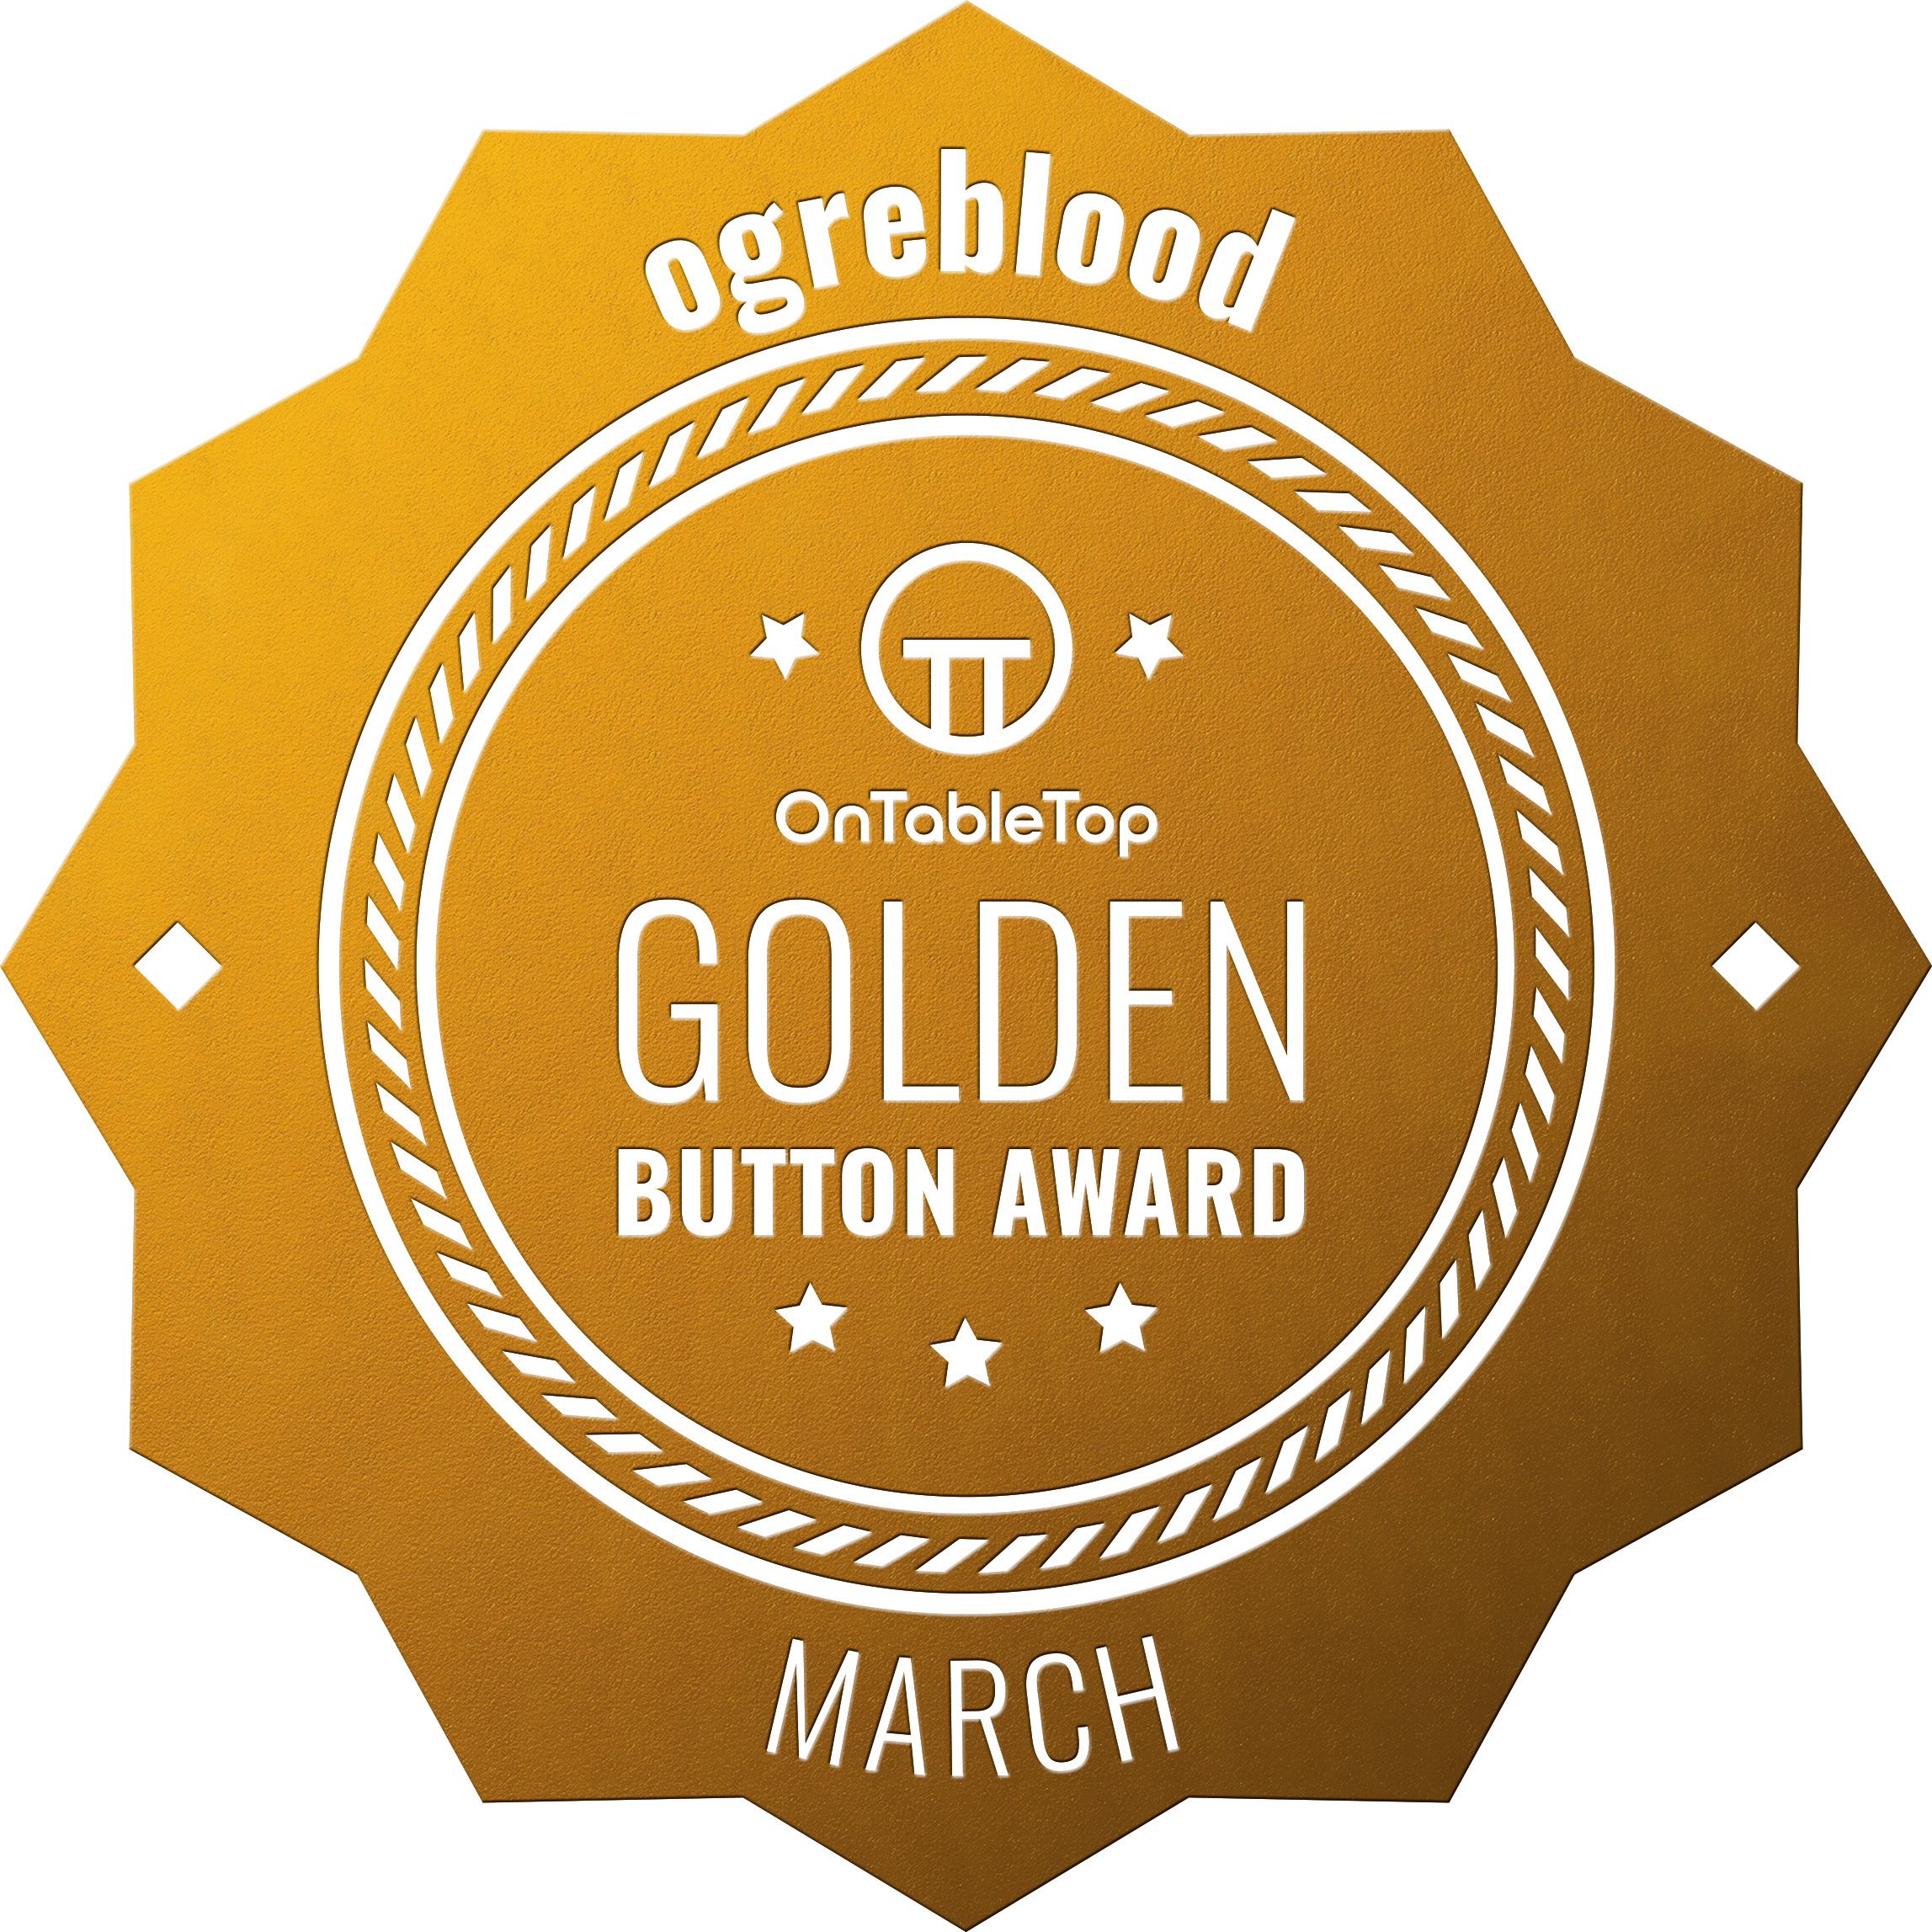 ogreblood-Golden-Button-March-2021